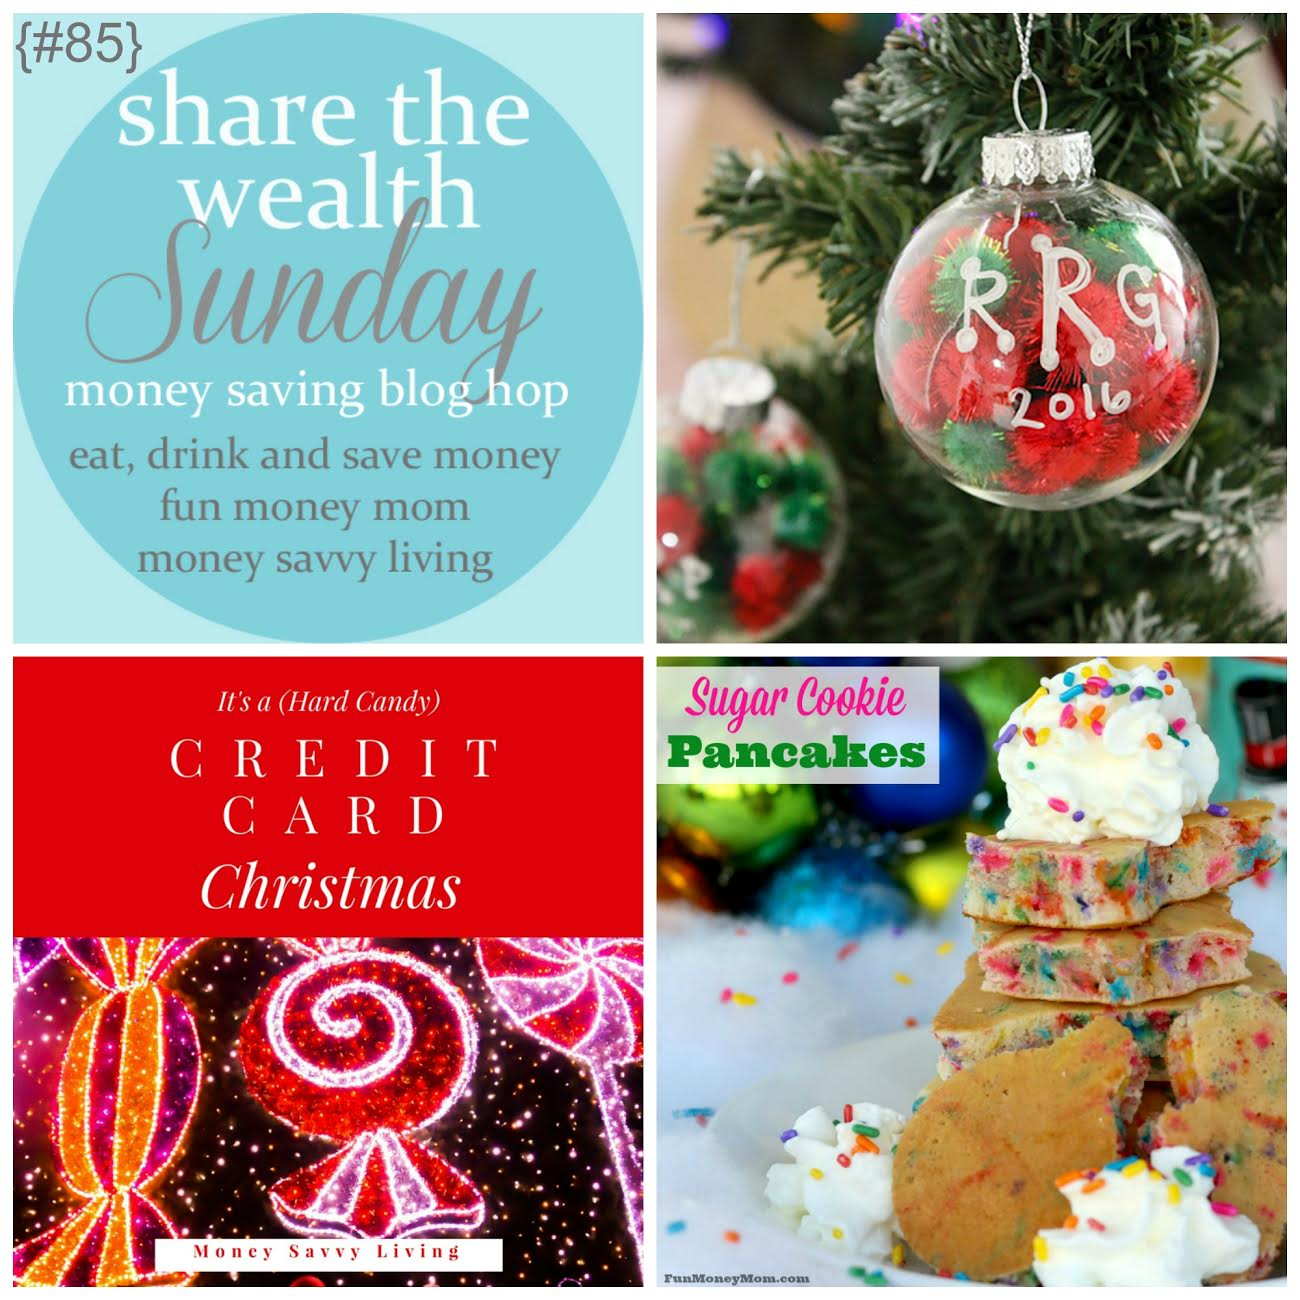 Share the wealth Sunday link up party favorite-posts-of-the-week